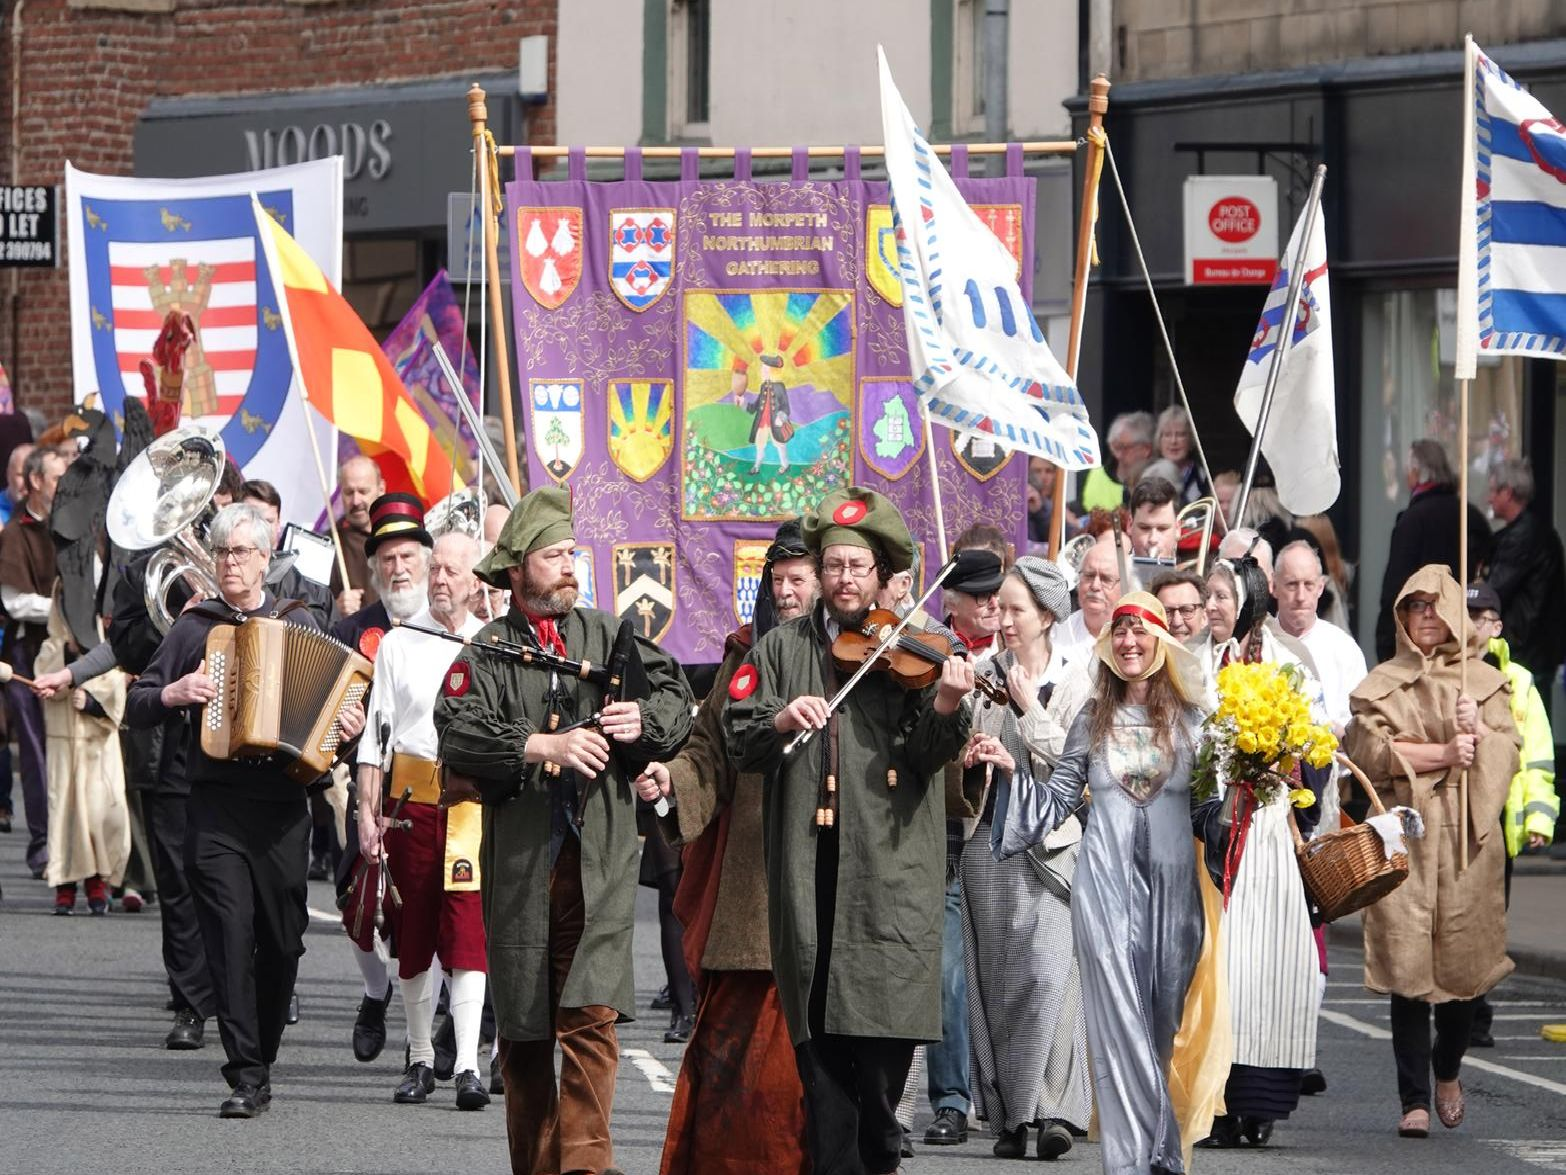 Morpeth Northumbrian Gathering Pictures by Jane Coltman